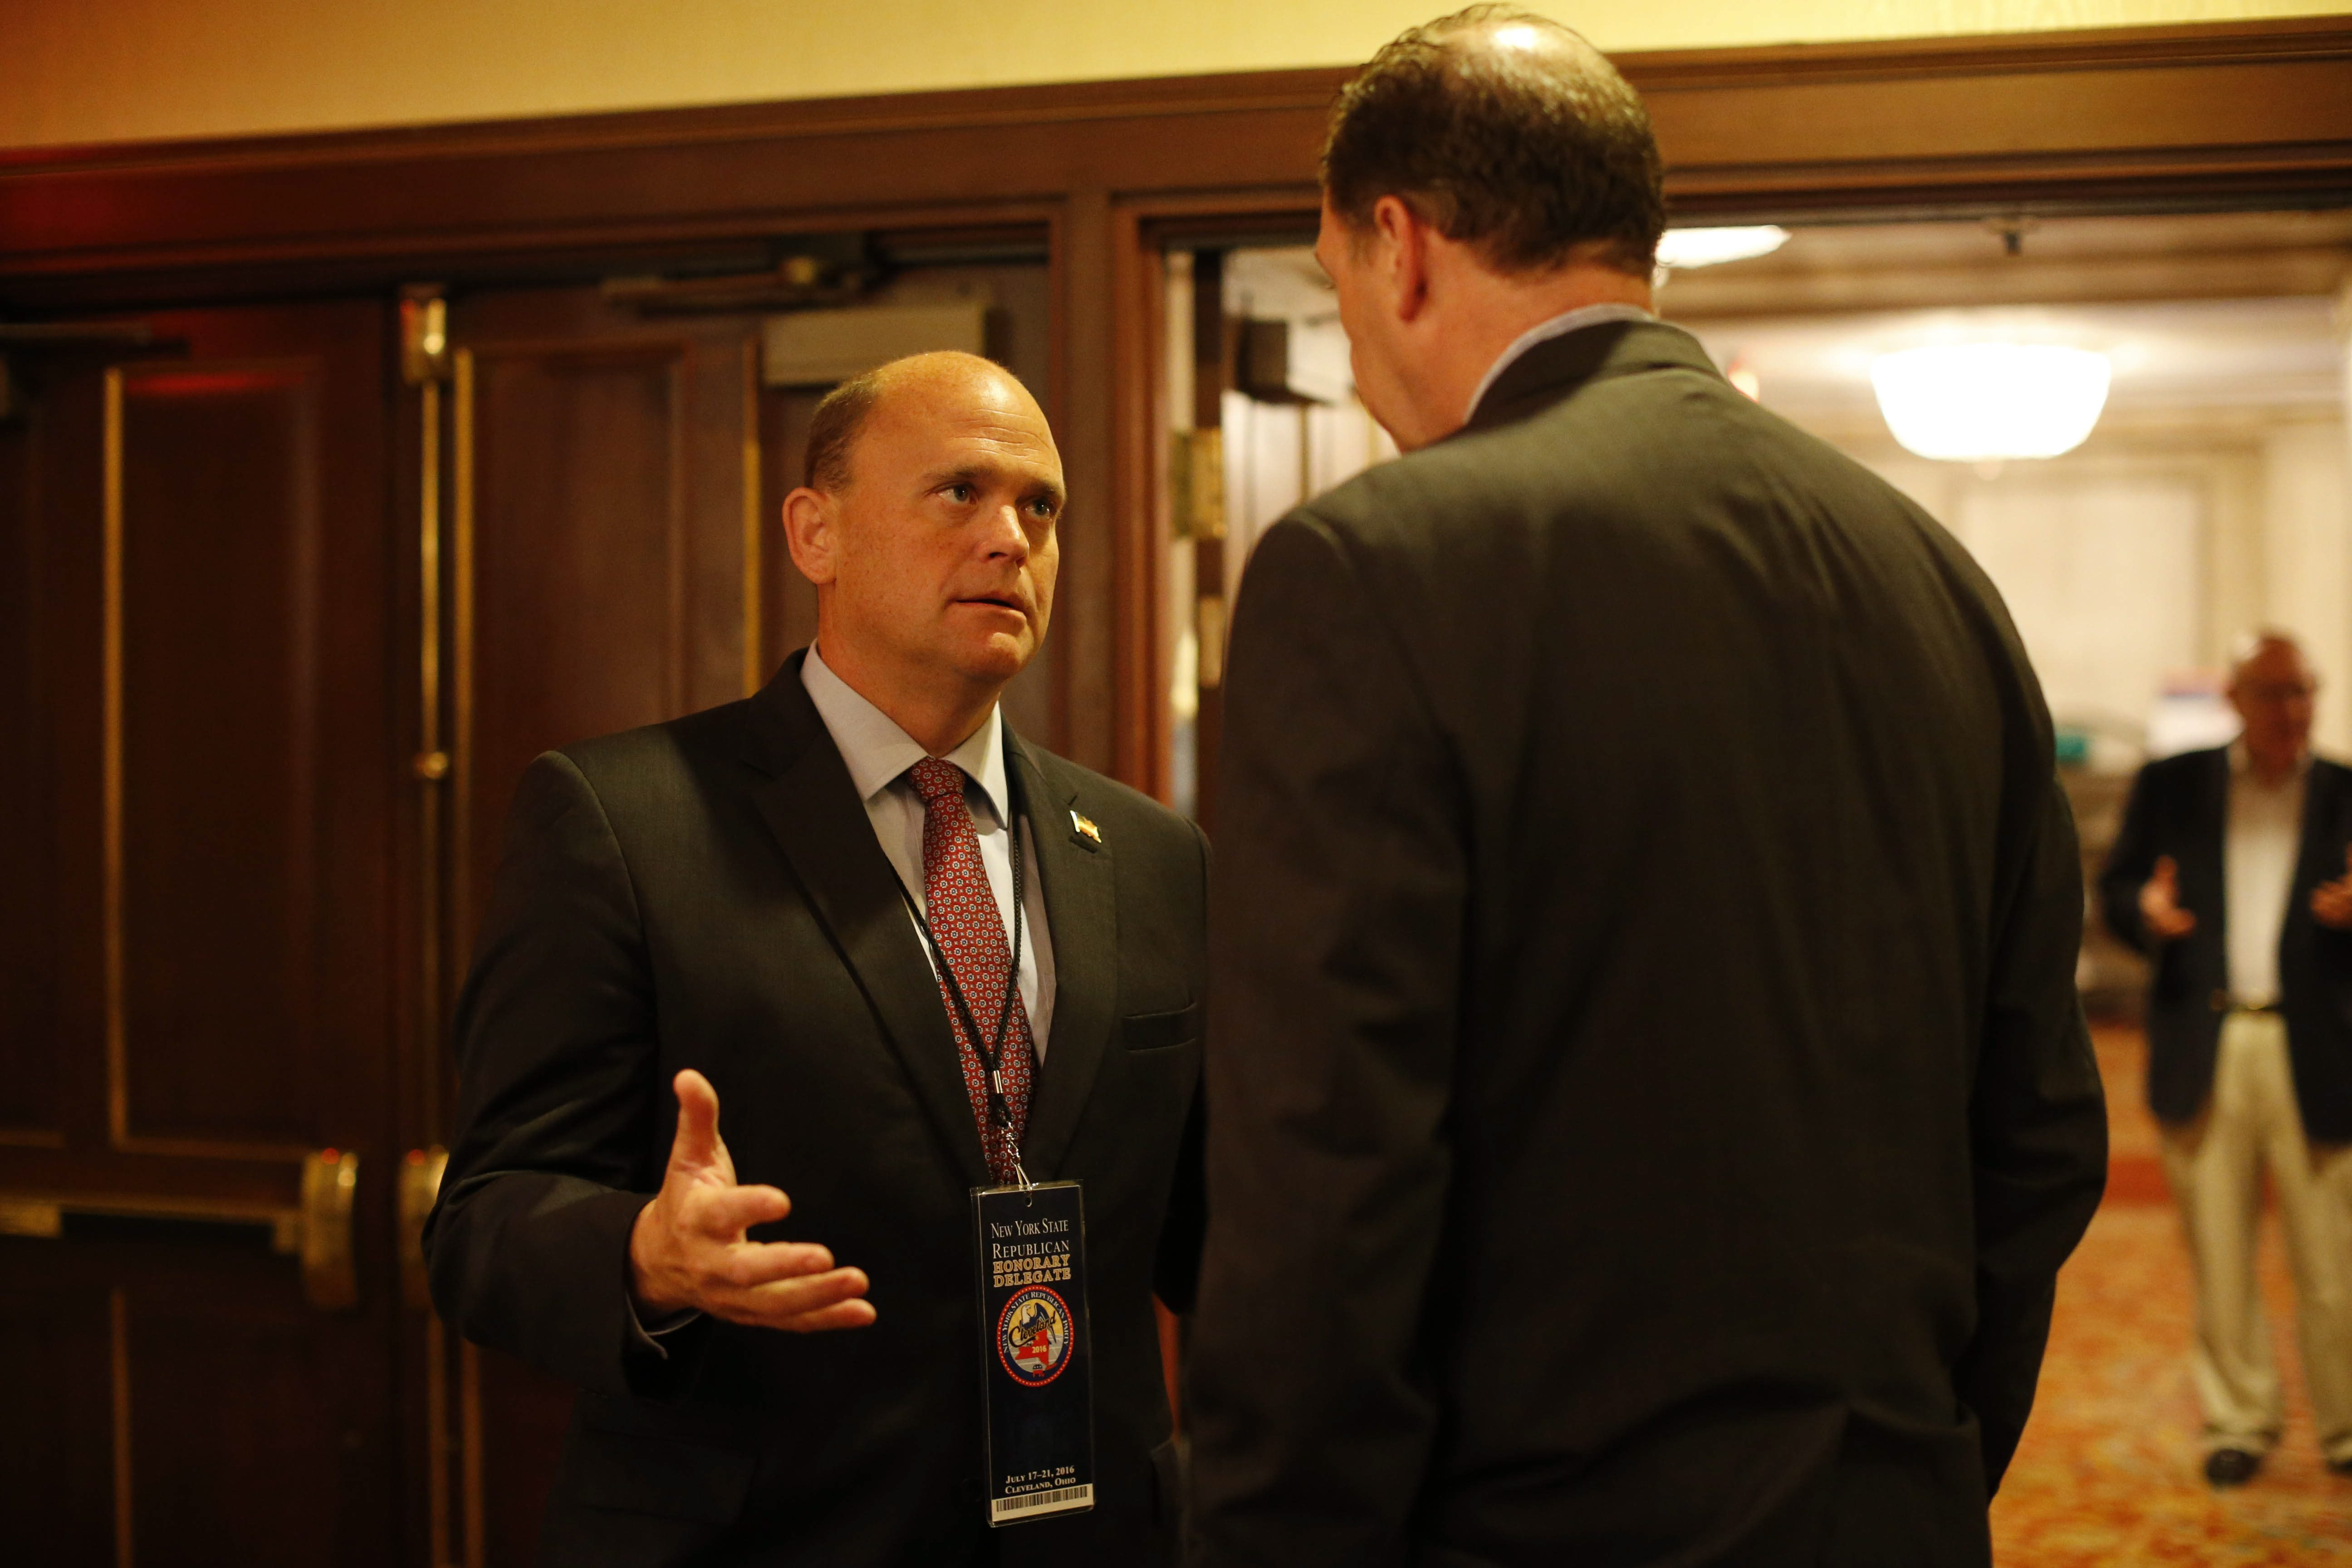 Rep. Tom Reed of Corning mingles prior to giving a speech during the New York delegation breakfast at the Renaissance Hotel, on July 20.  (Derek Gee/Buffalo News)